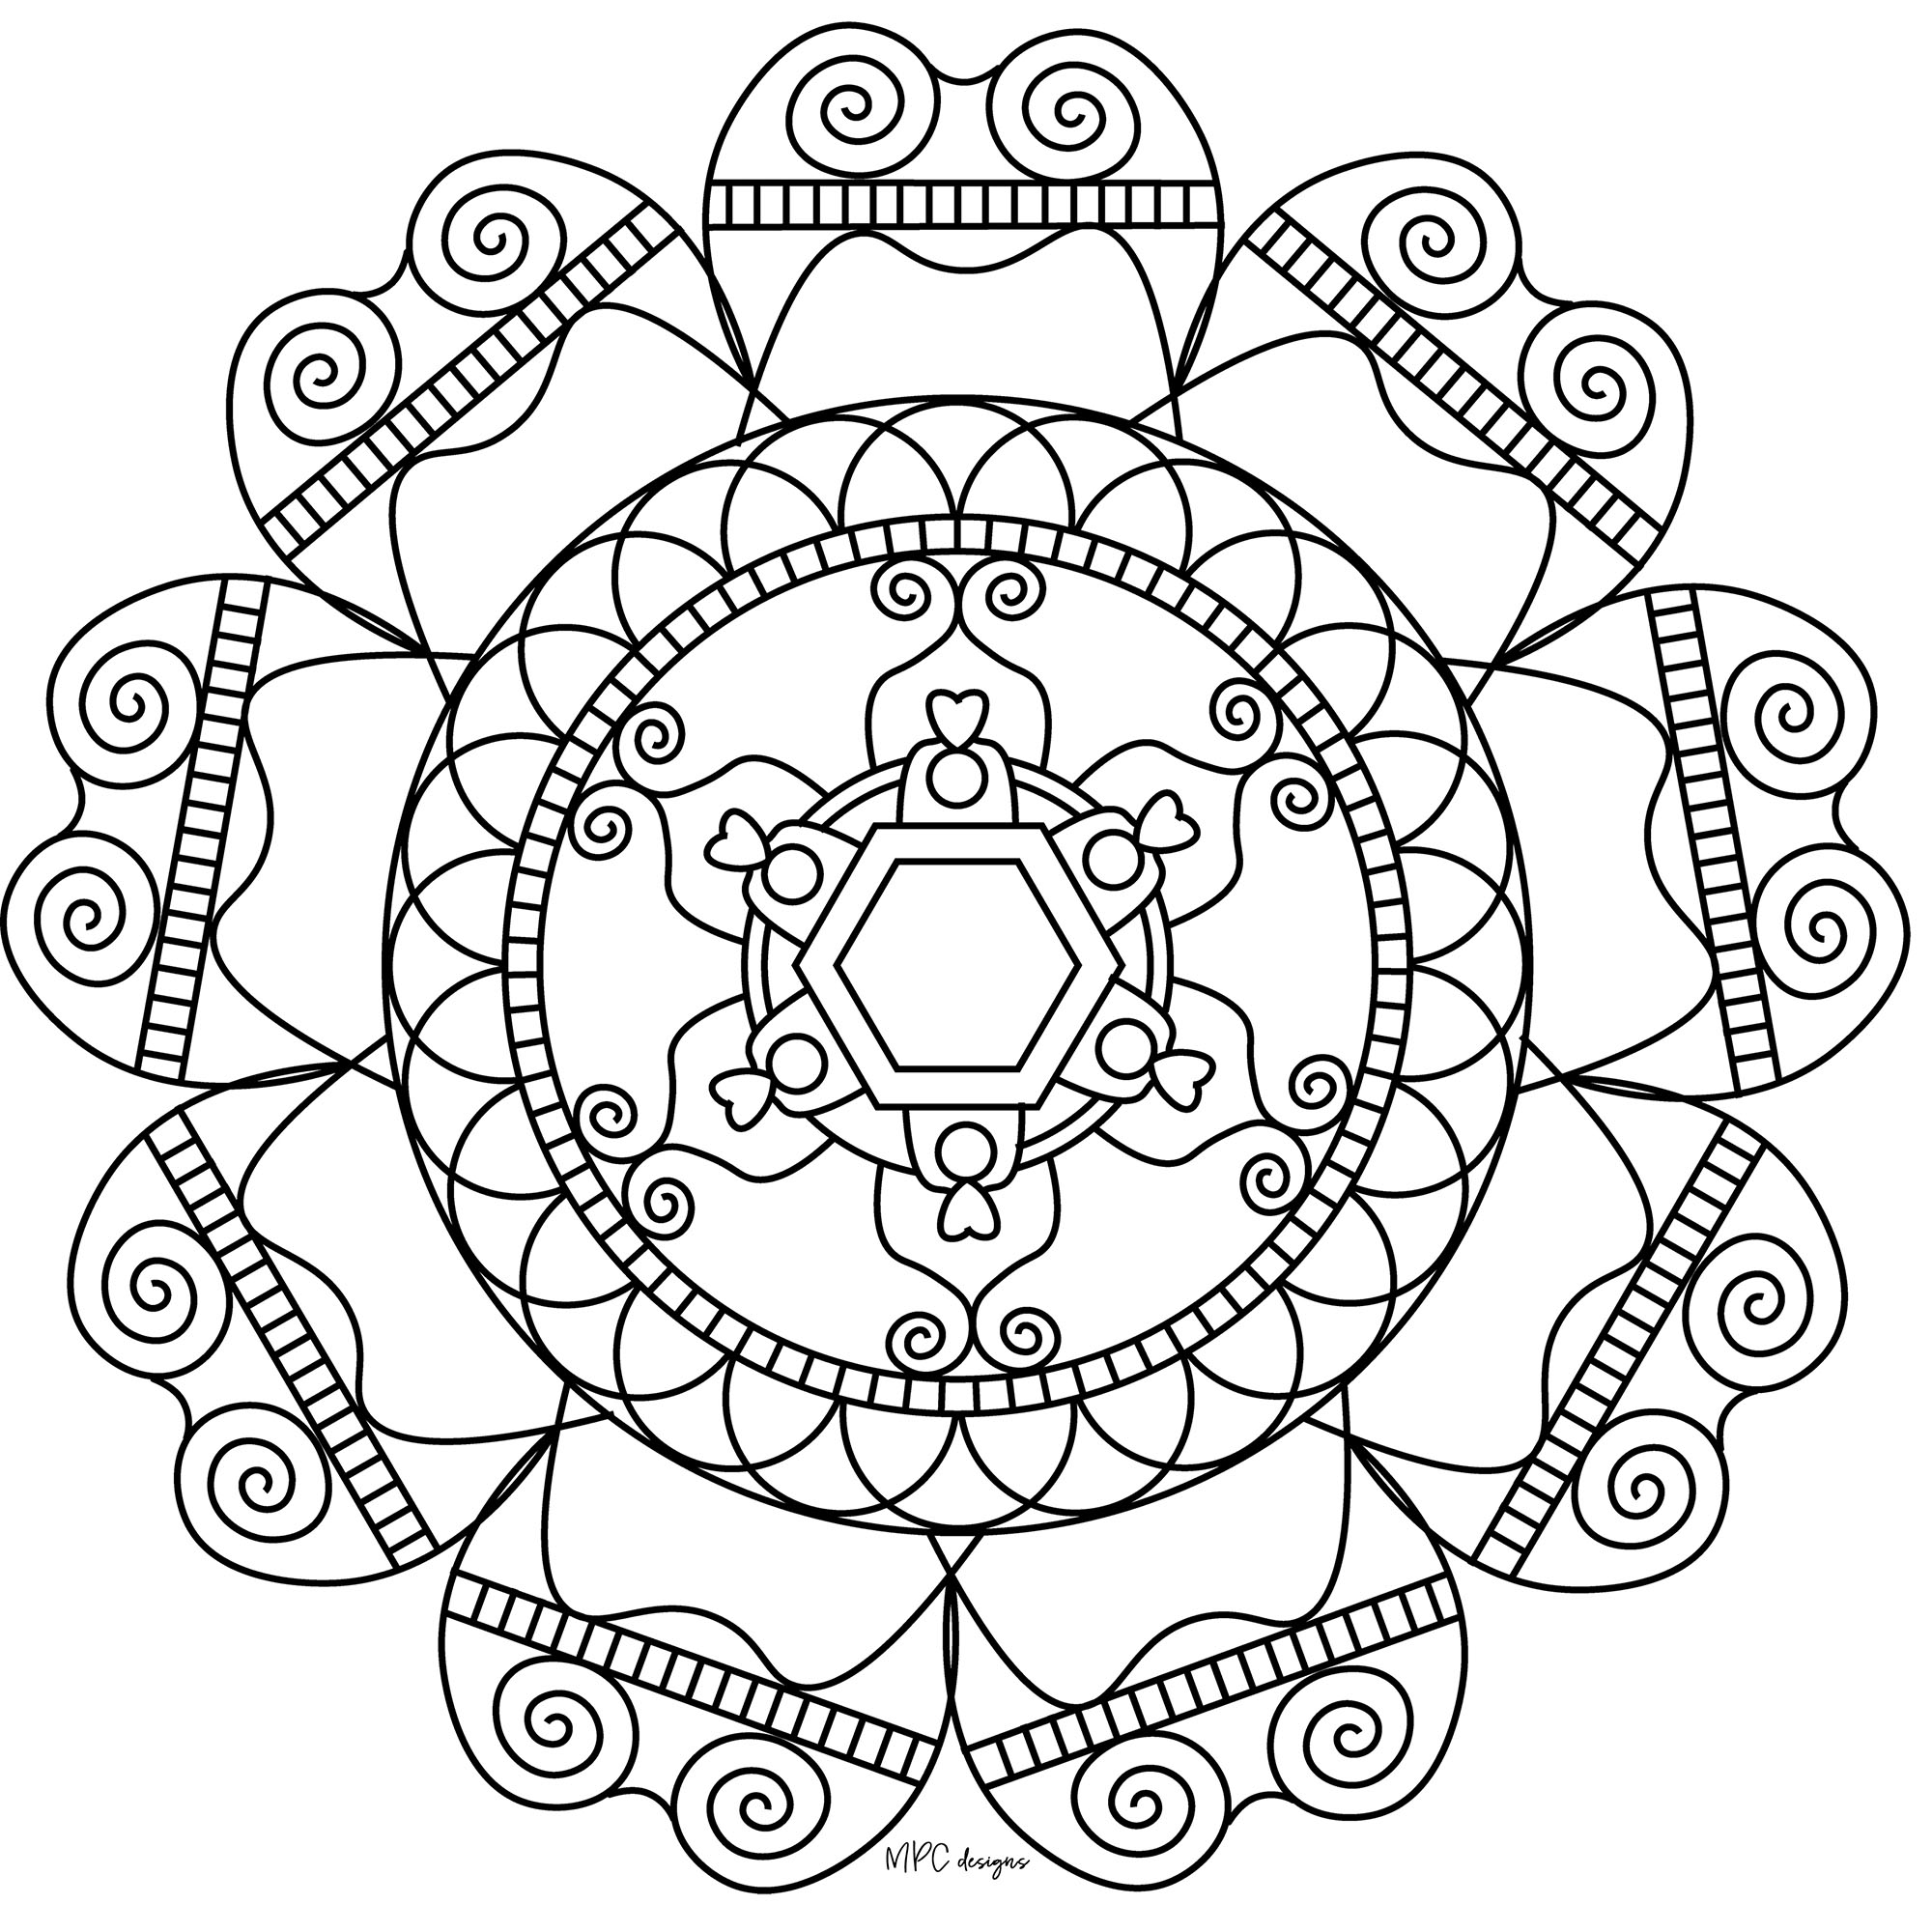 free mandalas to print and color mandala coloring pages free download terrific mandala print mandalas free and color to